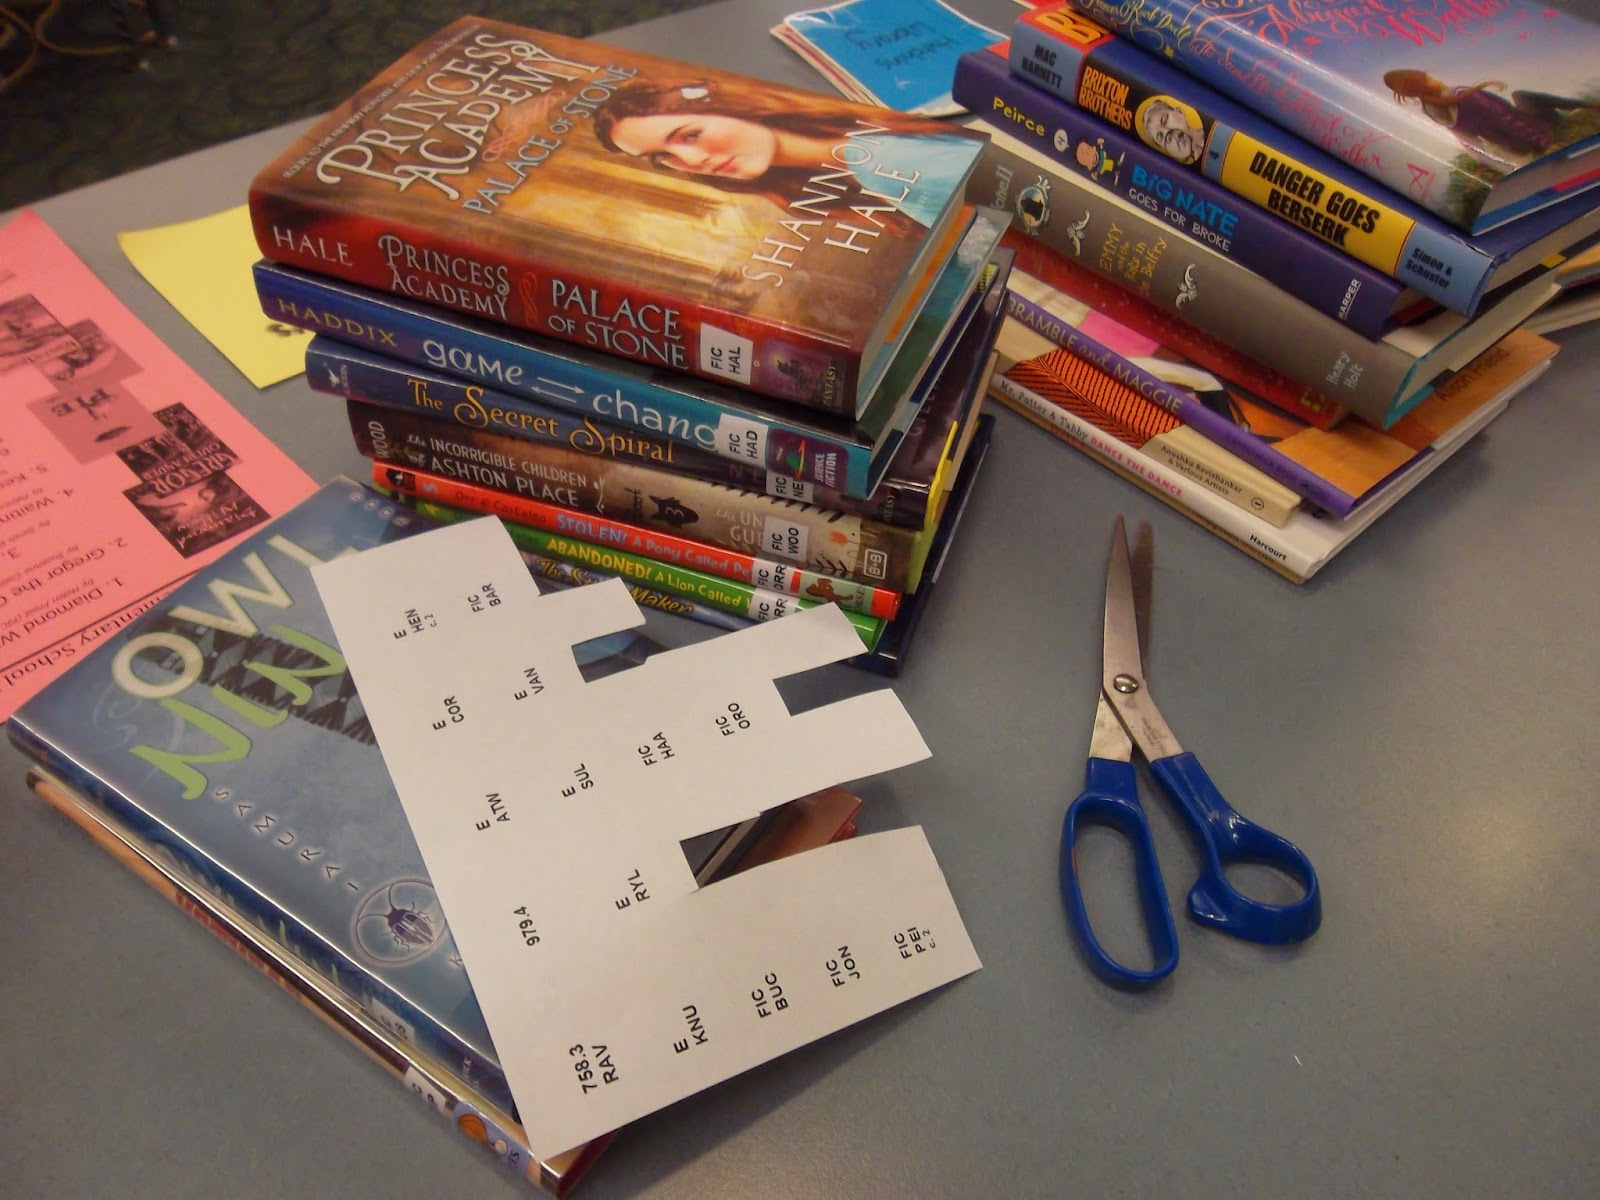 Several stacks of books, some with spine labels and others waiting to have labels placed on them. A paper print-out of spine labels is in the foreground with a pair of scissors